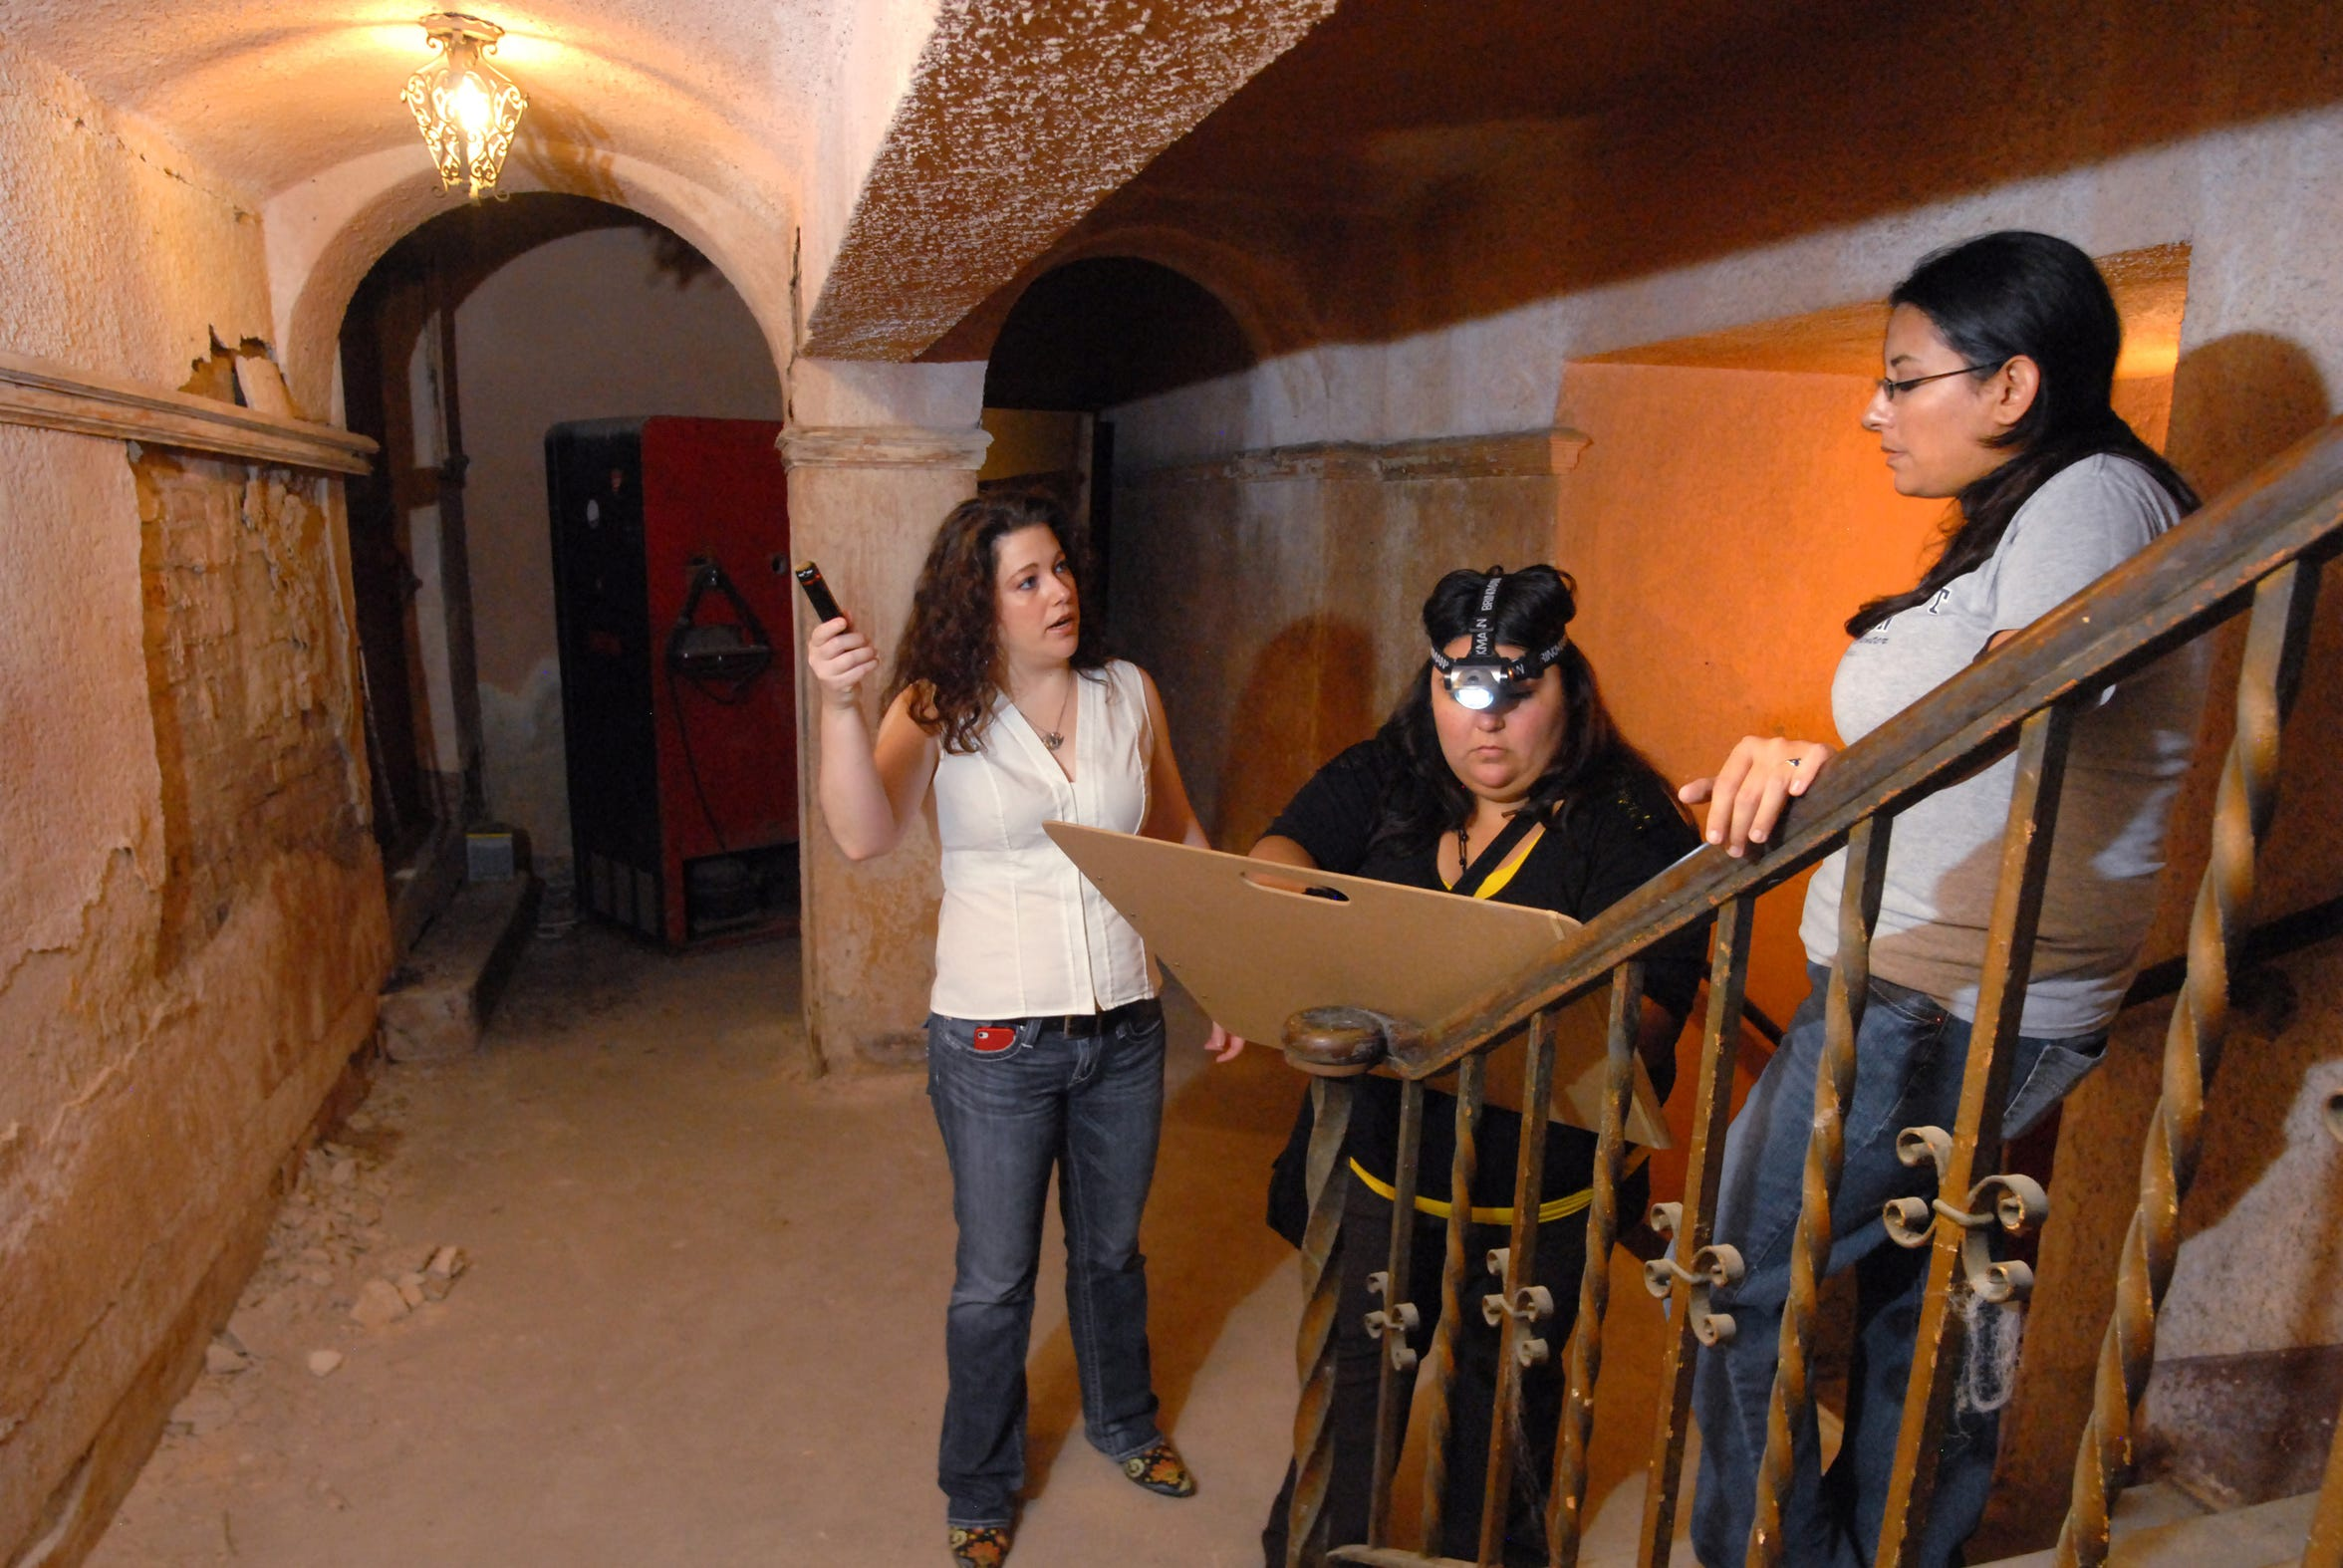 Del Mar College Professor Laura Bennett (left) with drafting students Marlina Falcon (middle) and Celeste Gonzales (right) as they talk about measuring another area of the theater to document the layout and architectural significance of the Ritz Theater in March 2012, to create a 3-D model on the computer for the nonprofit working to restore the theater to its glory days.